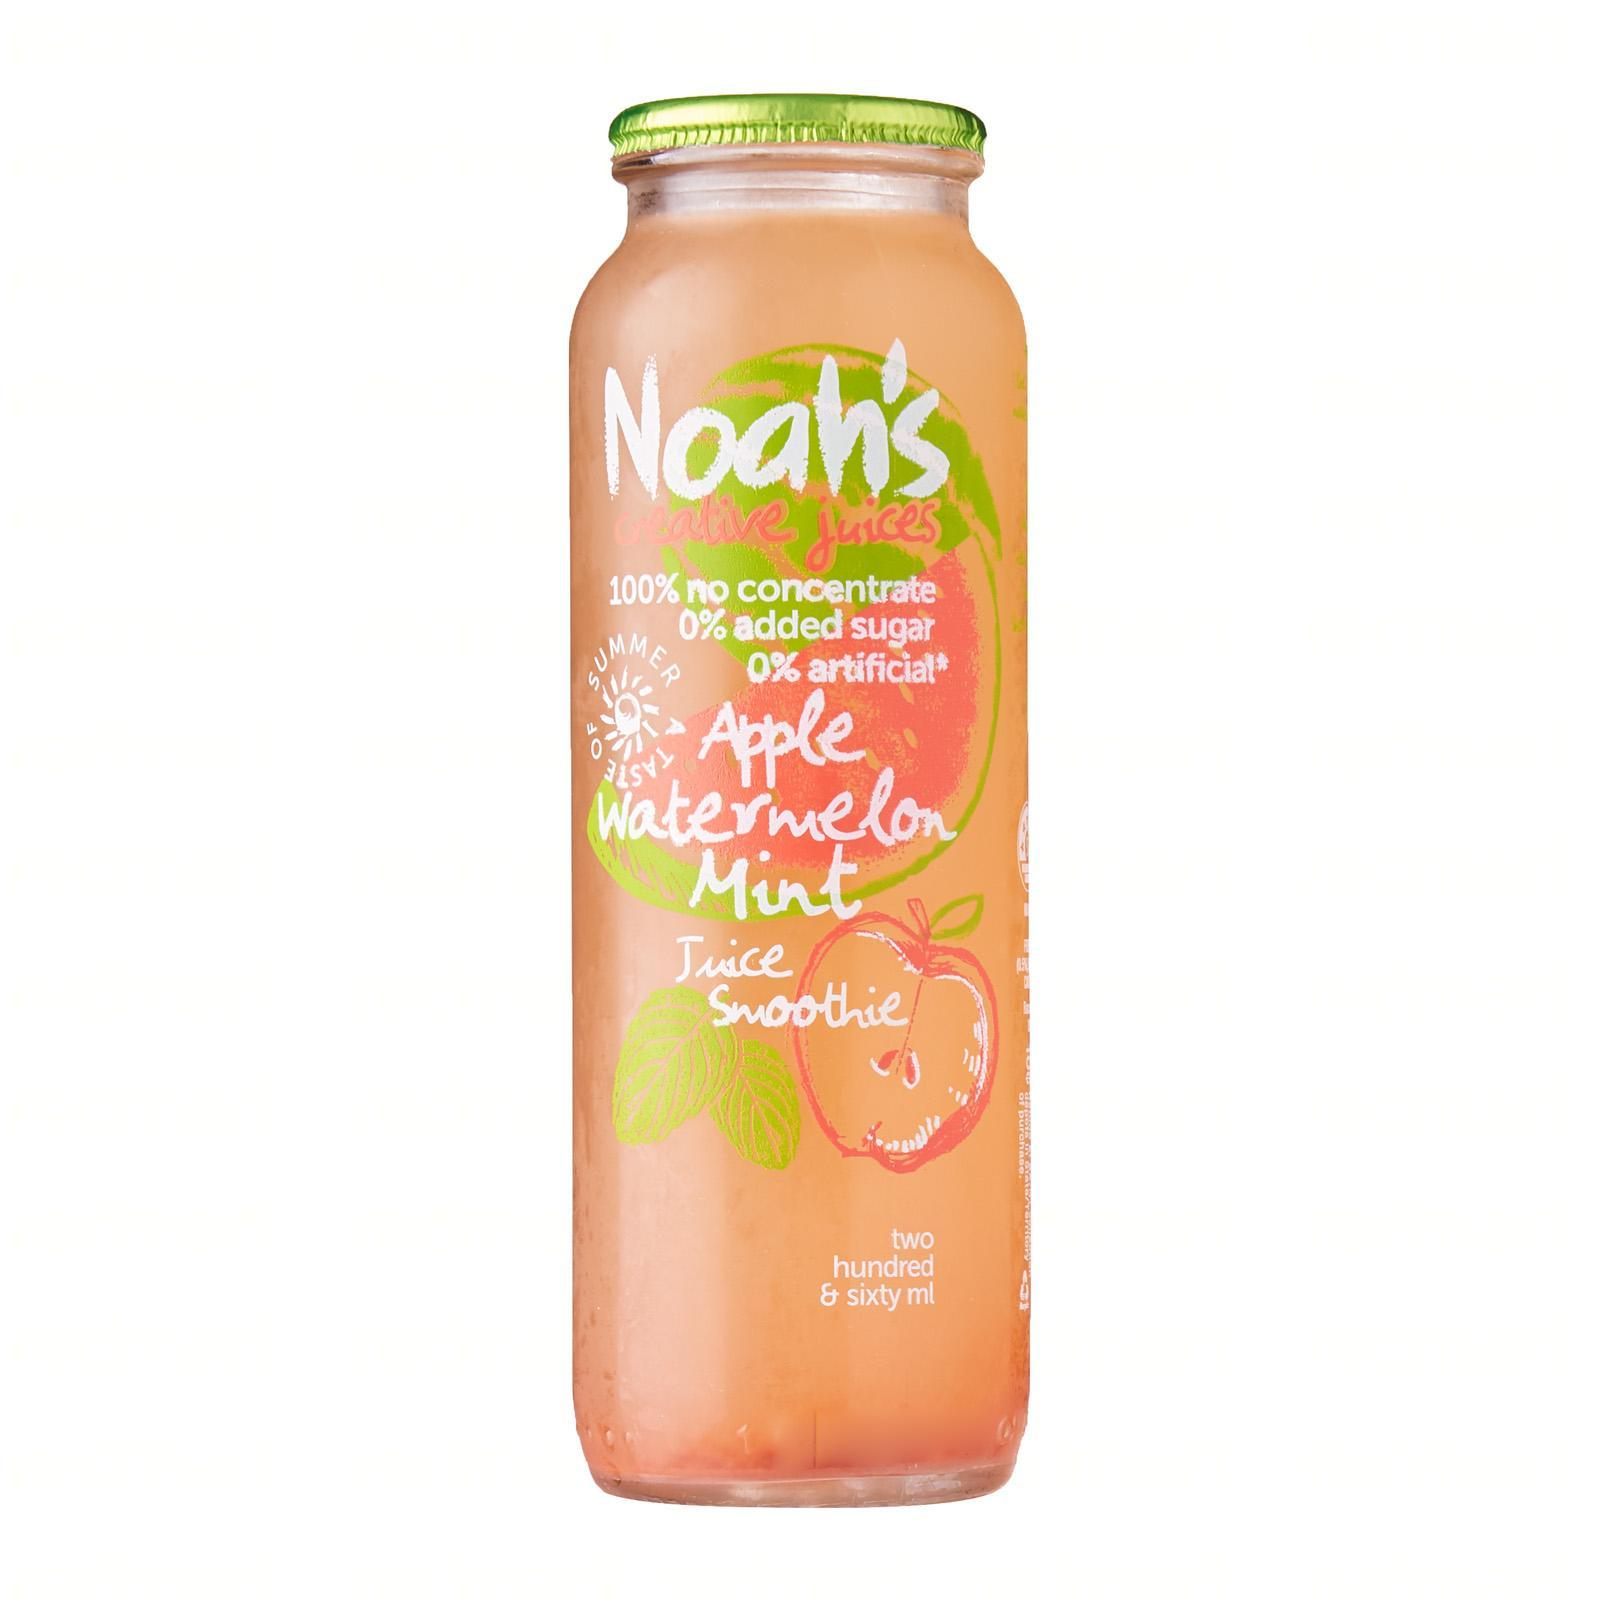 Noah's Apple Watermelon Mint - By Wholesome Harvest